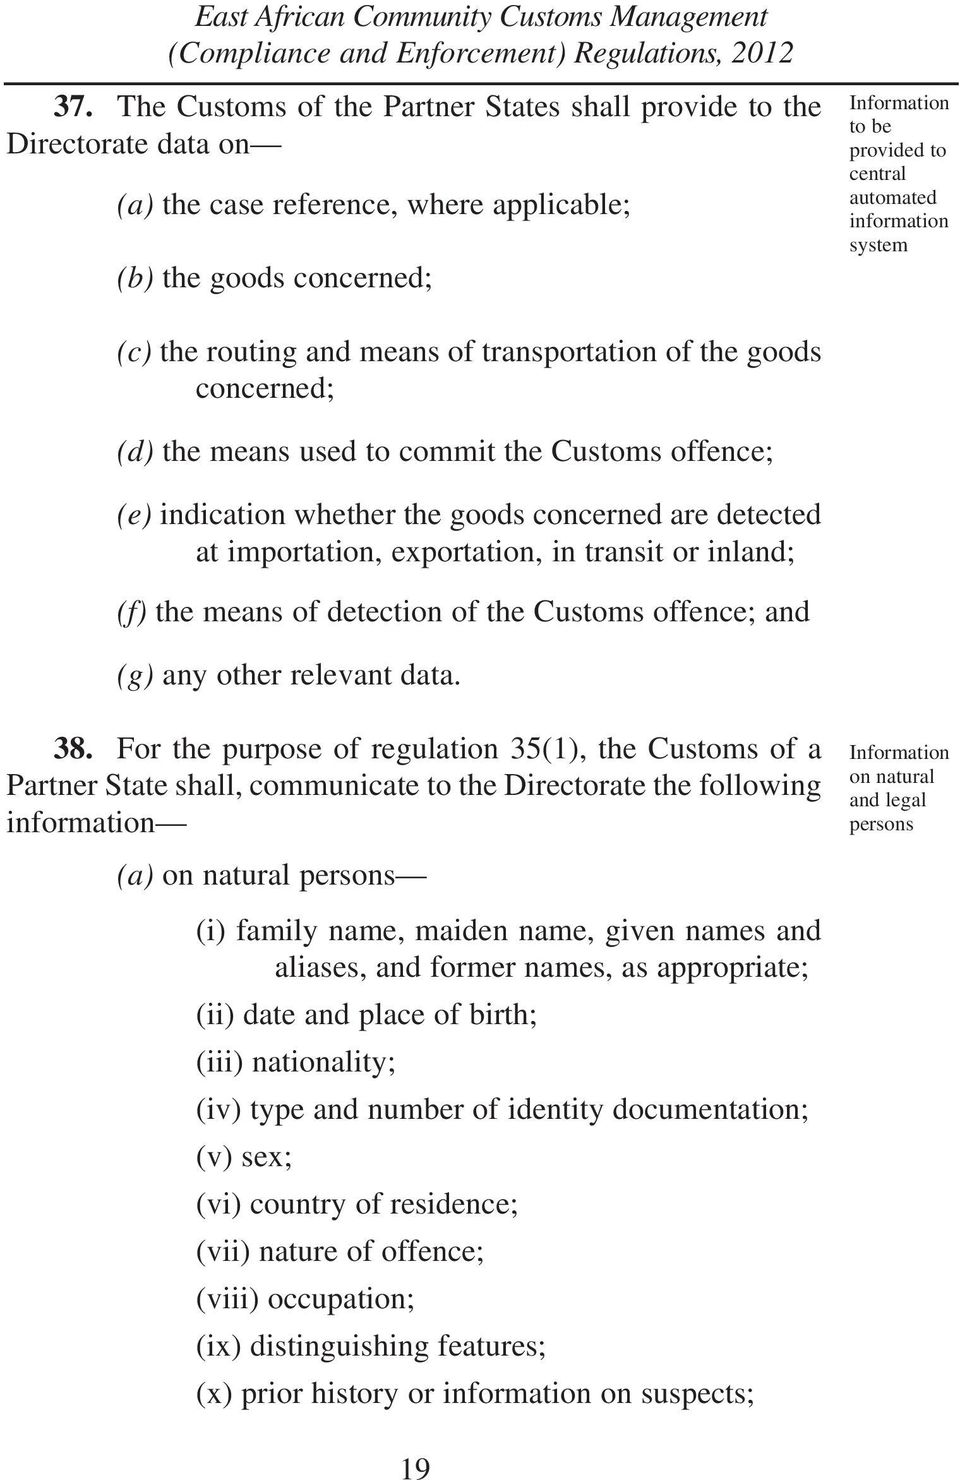 importation, exportation, in transit or inland; (f) the means of detection of the Customs offence; and (g) any other relevant data. 38.